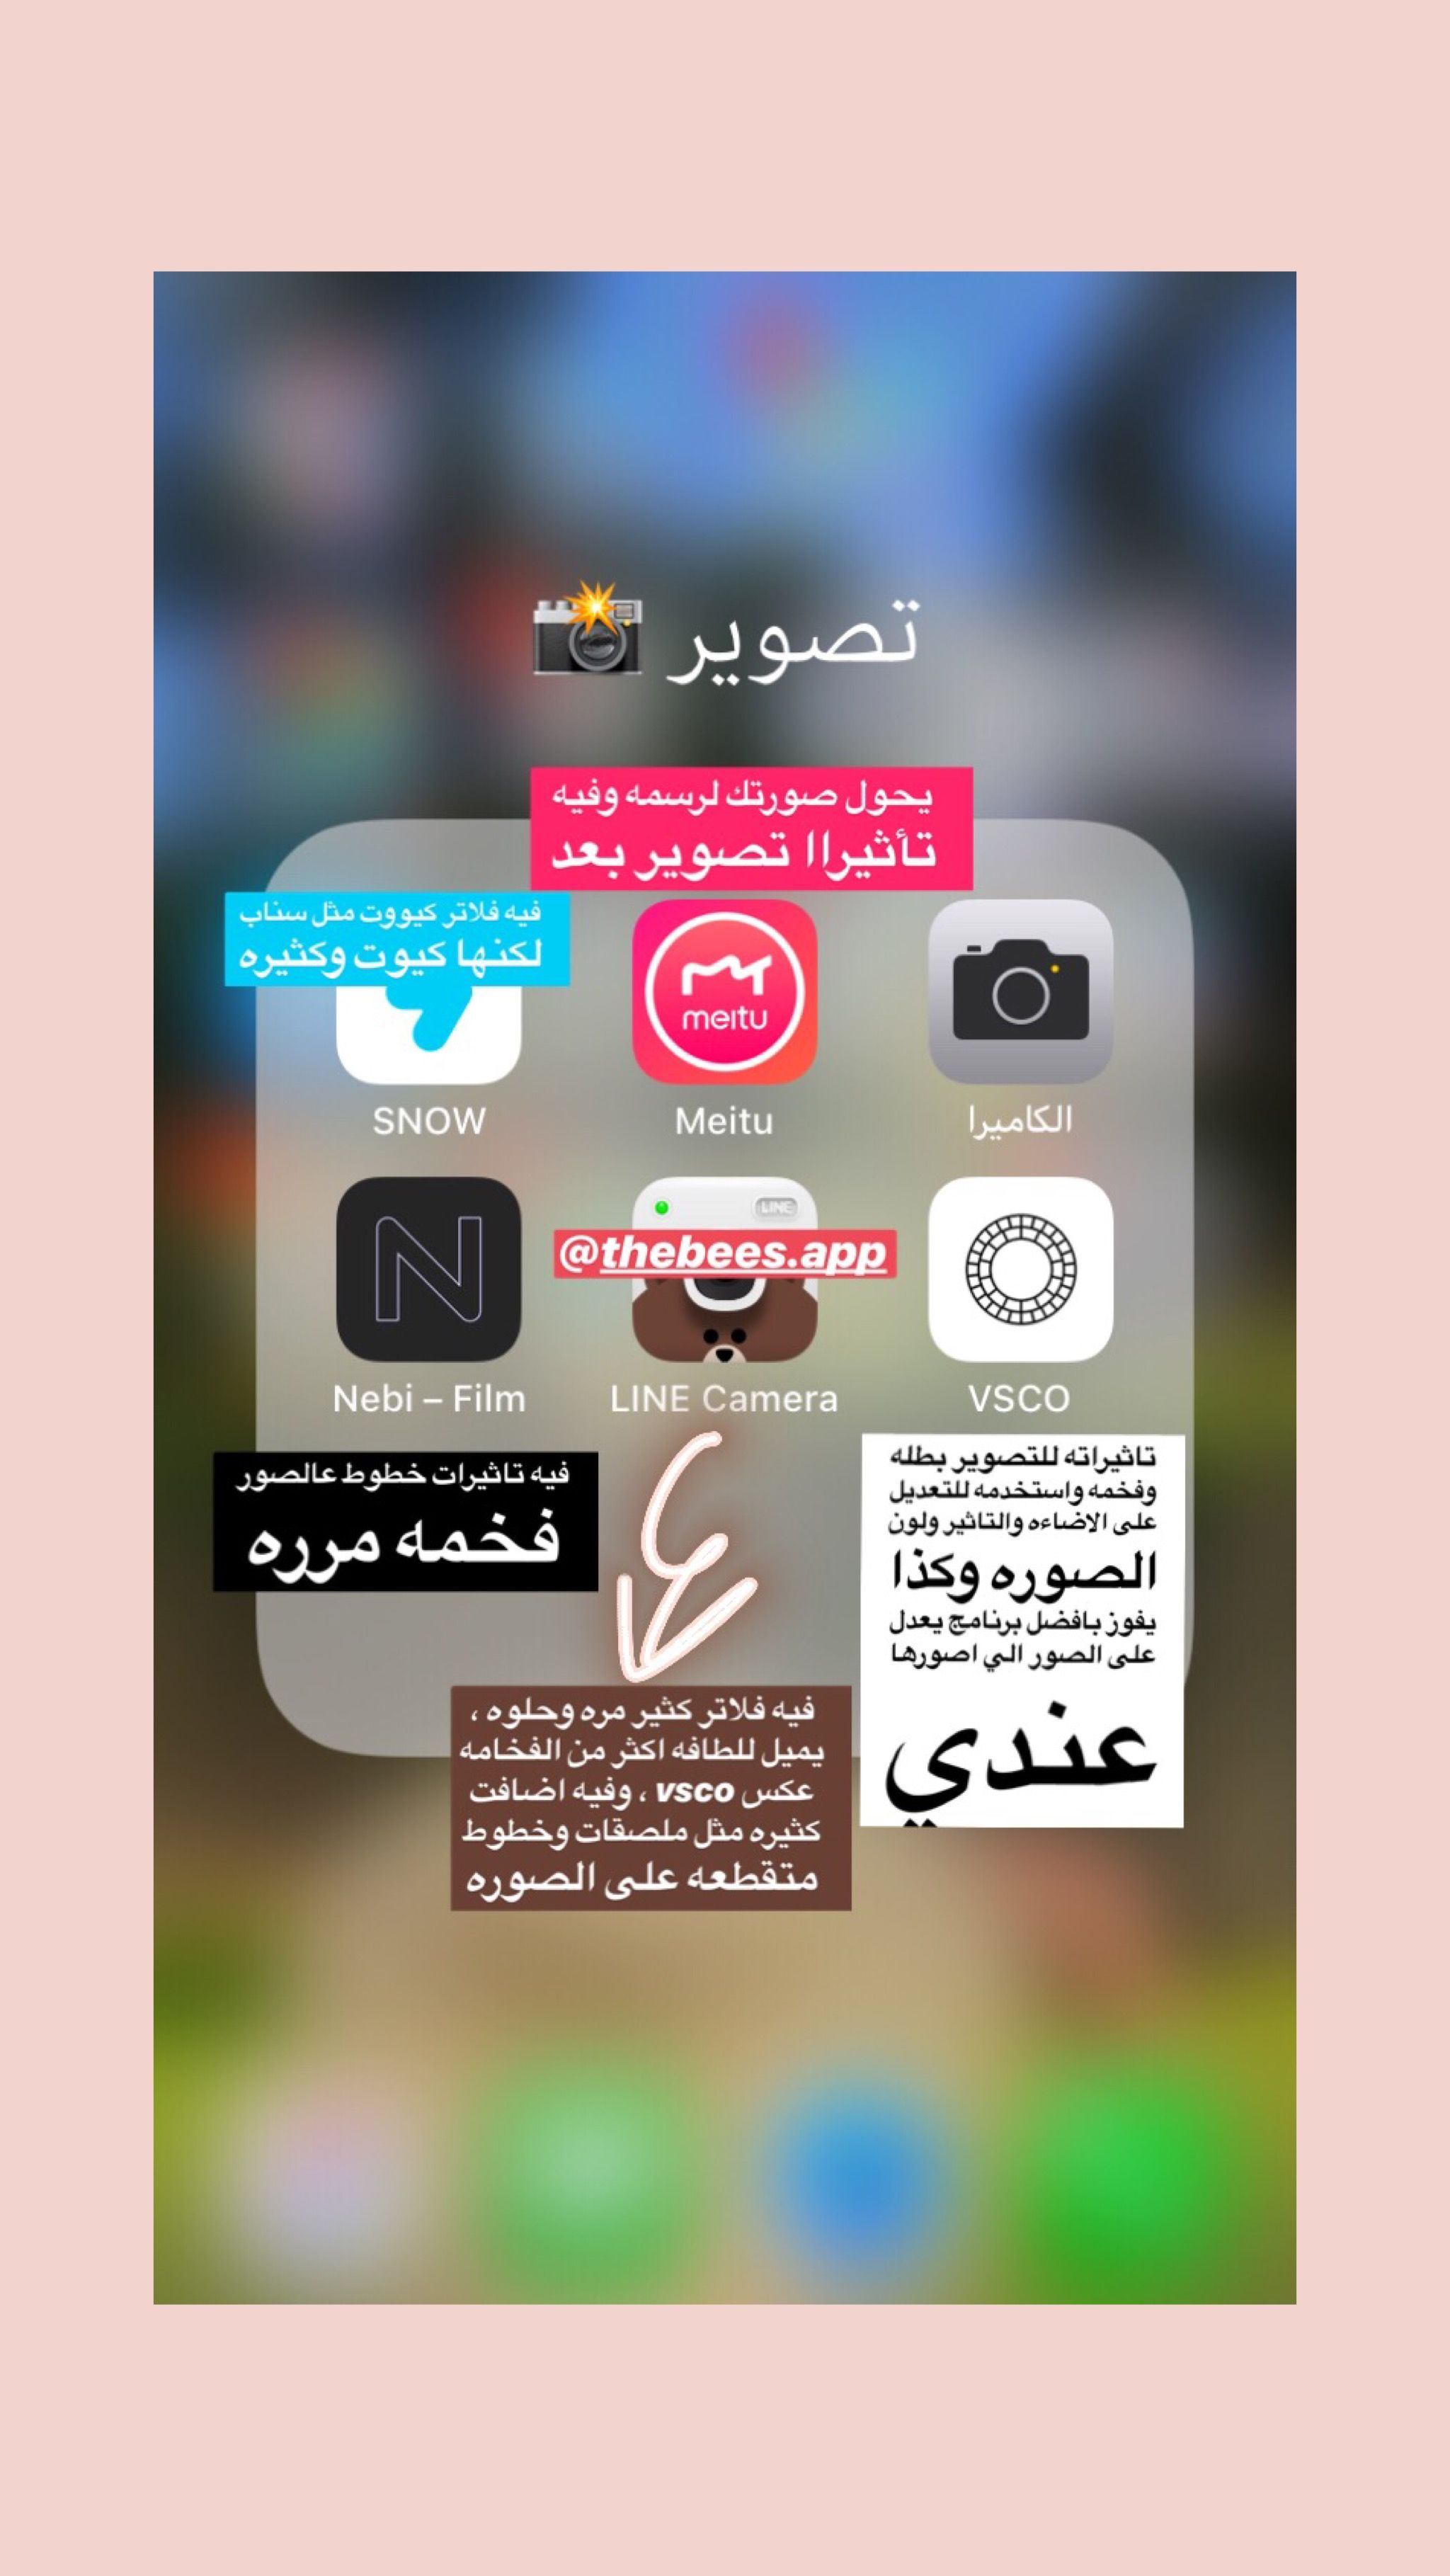 Pin By Enas On Application Photography Tips Iphone App Pictures Iphone Photo Editor App